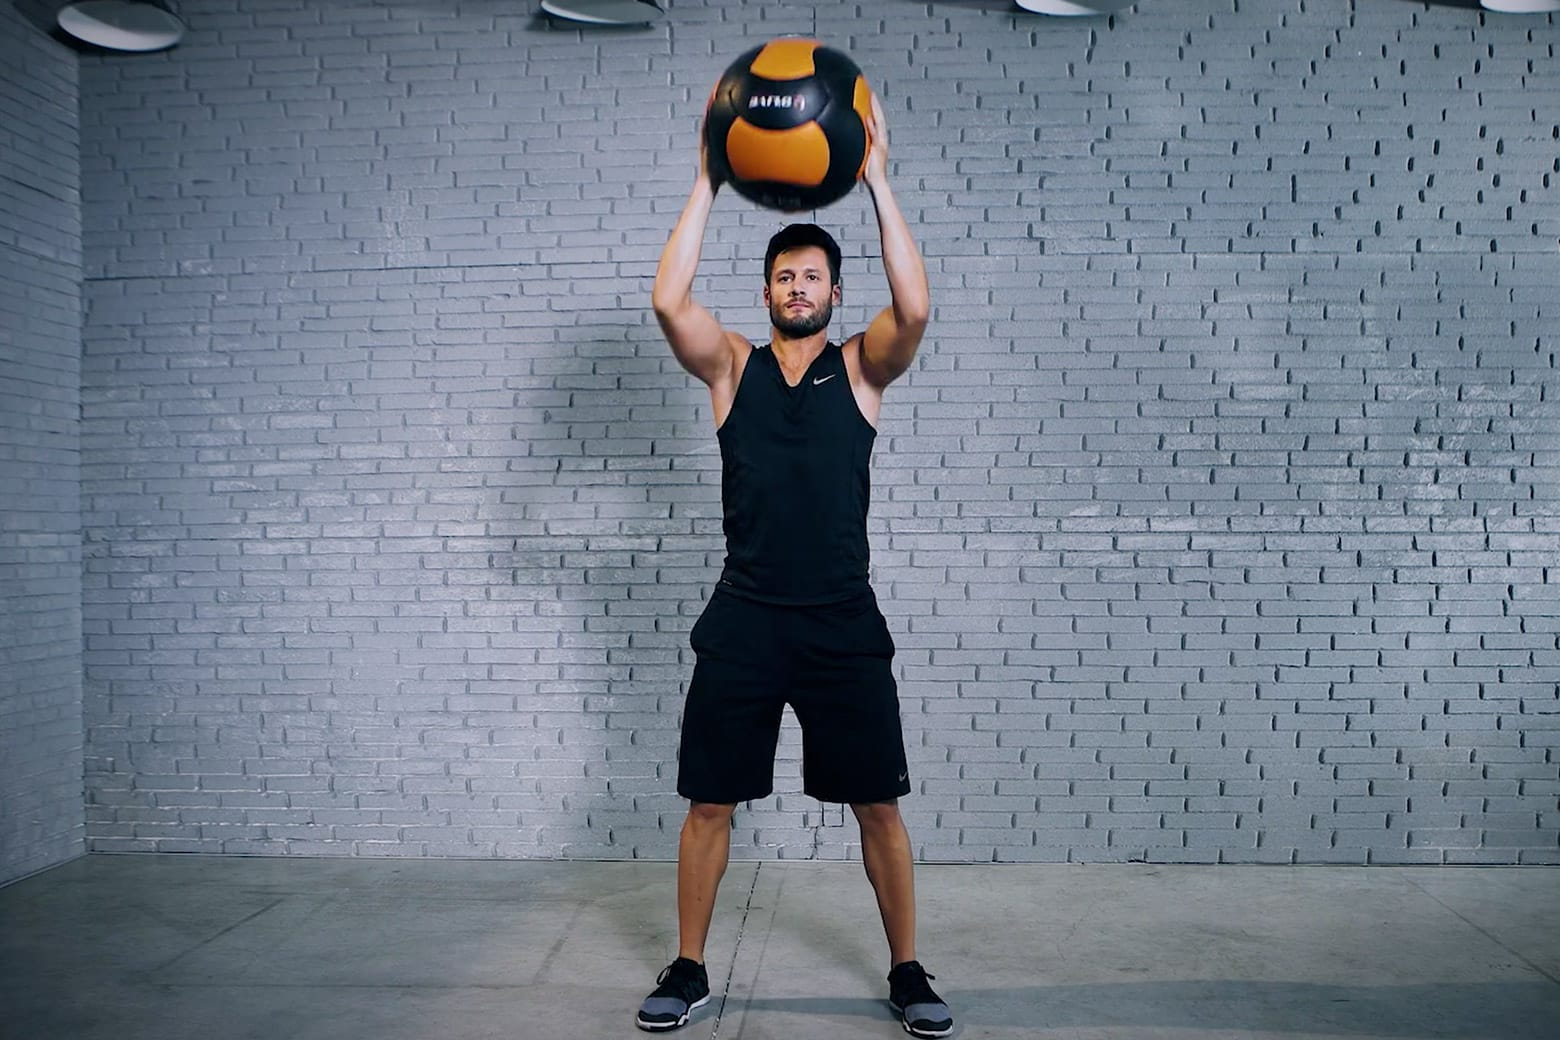 Exercise of the week: MB Squat to Overhead Press